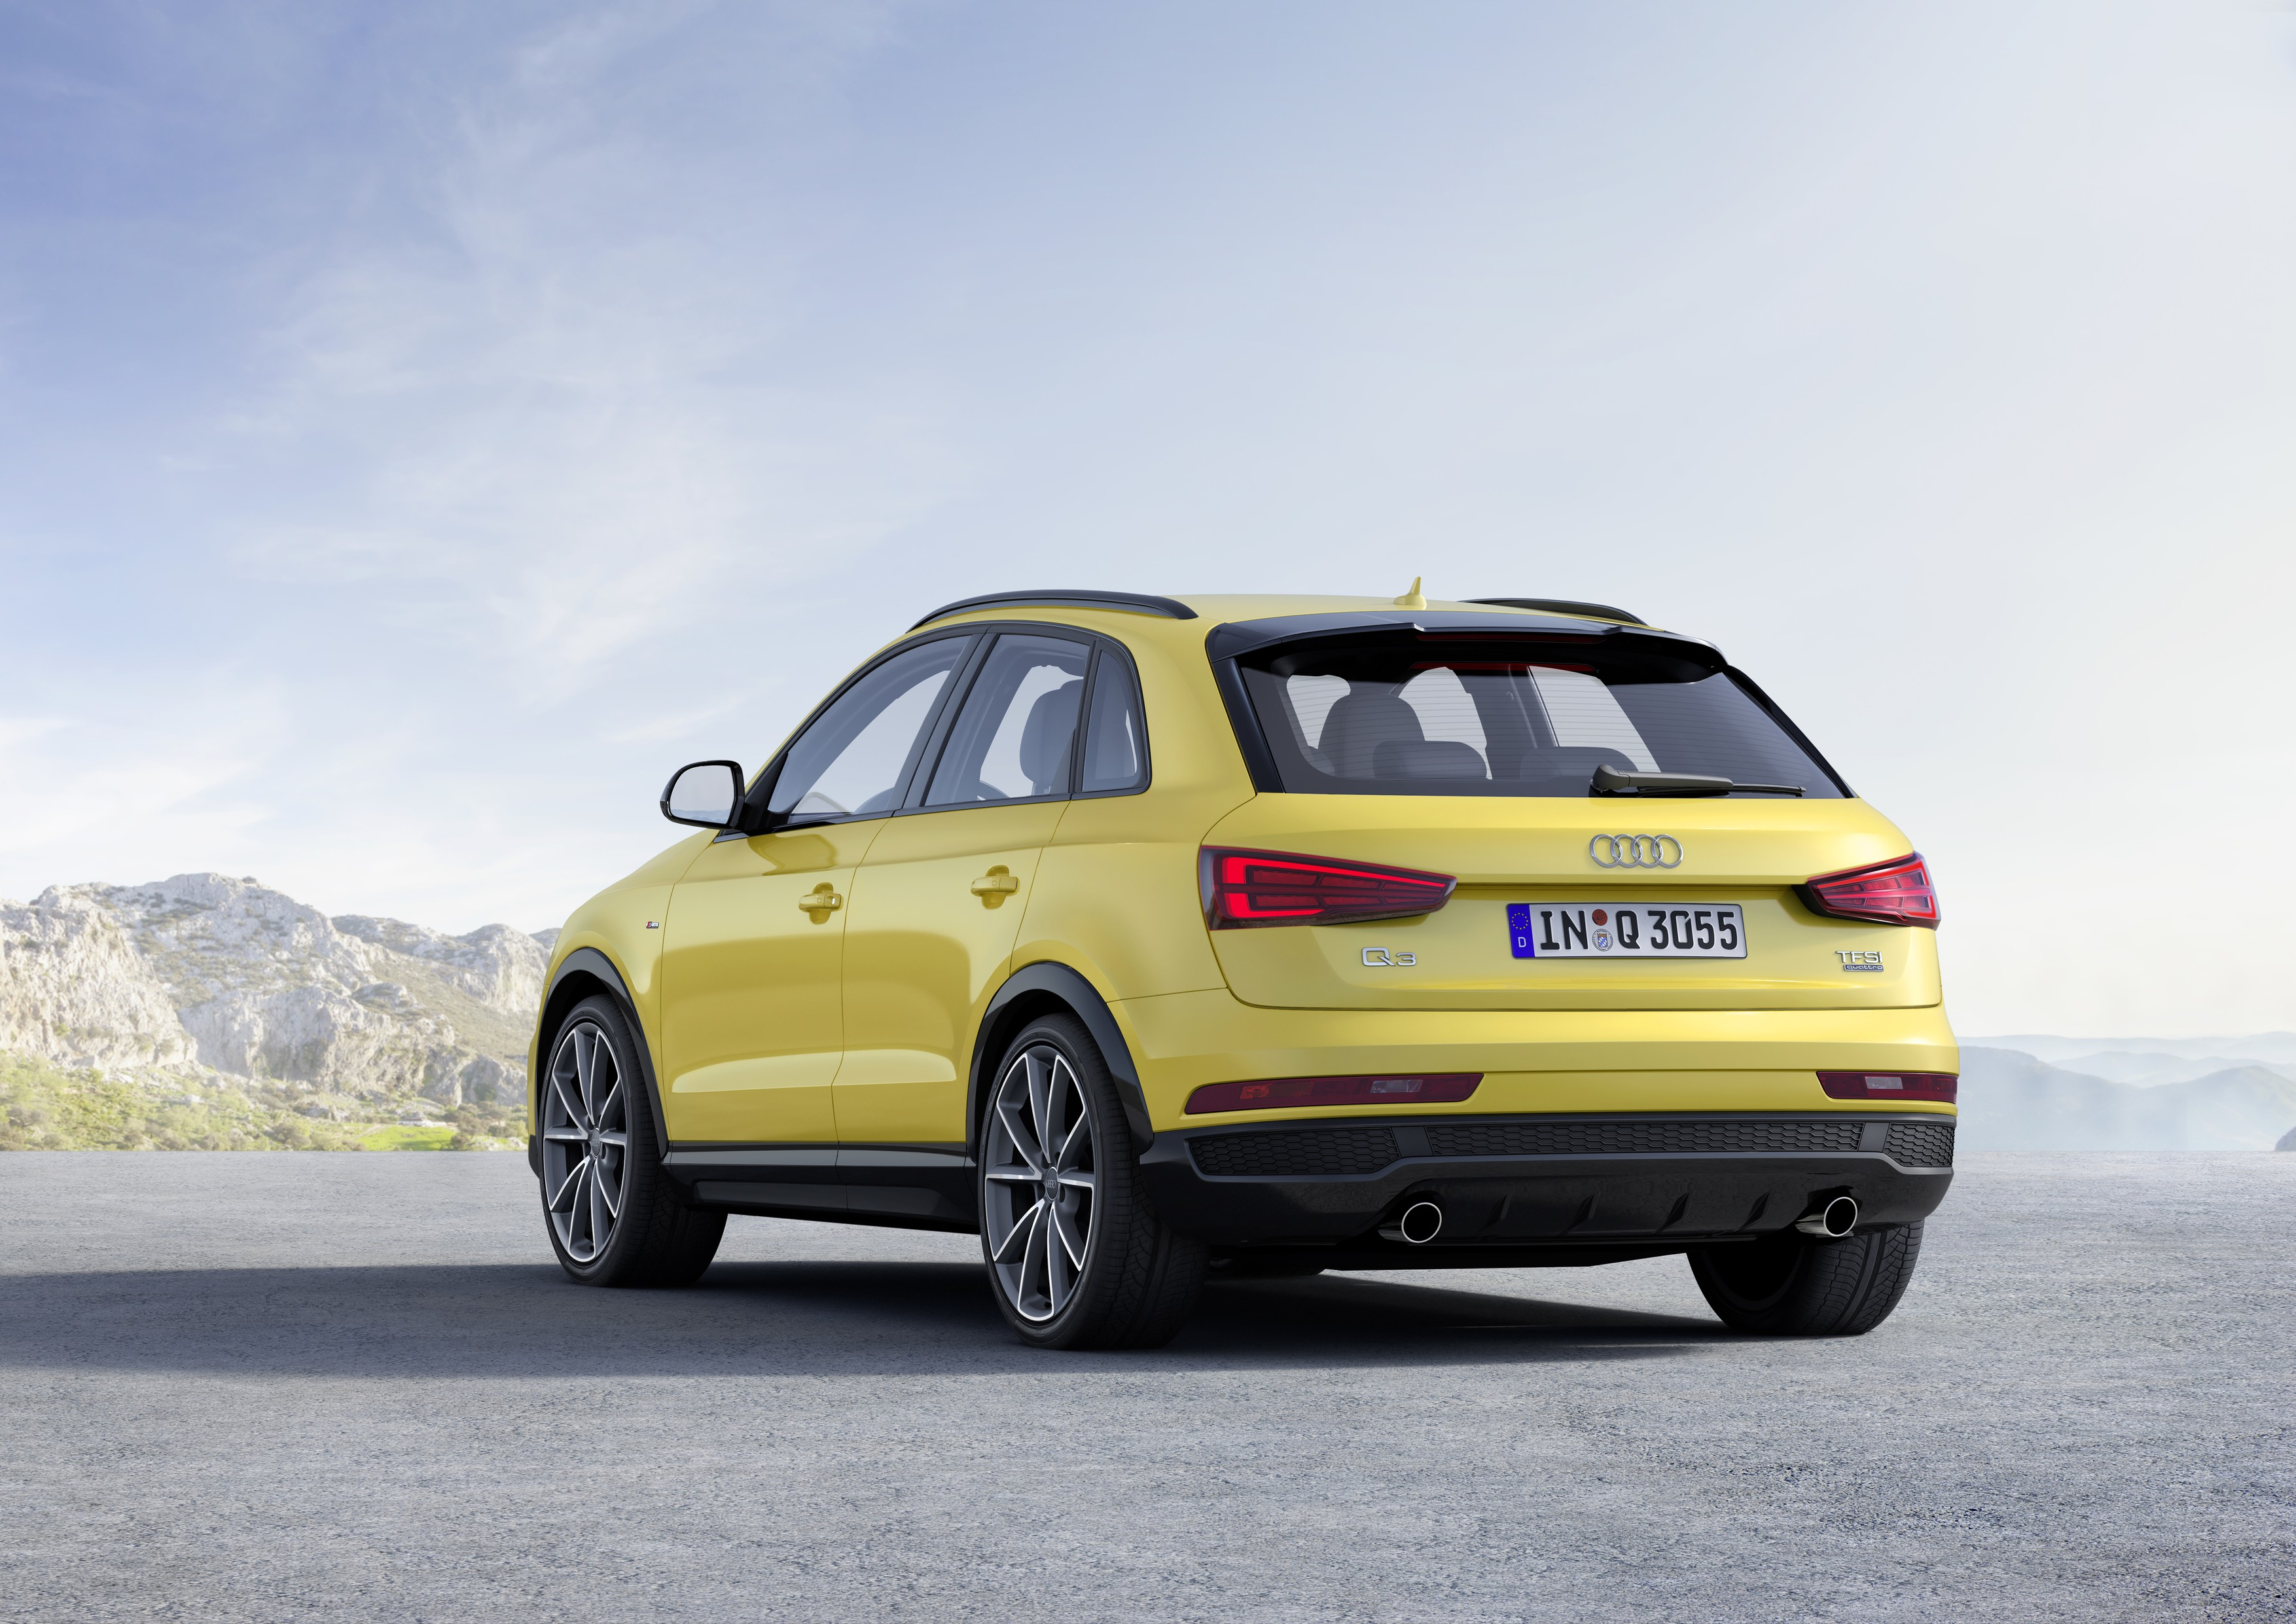 2018 audi q3 e tron could have 250 hp suv will become bigger autoevolution. Black Bedroom Furniture Sets. Home Design Ideas